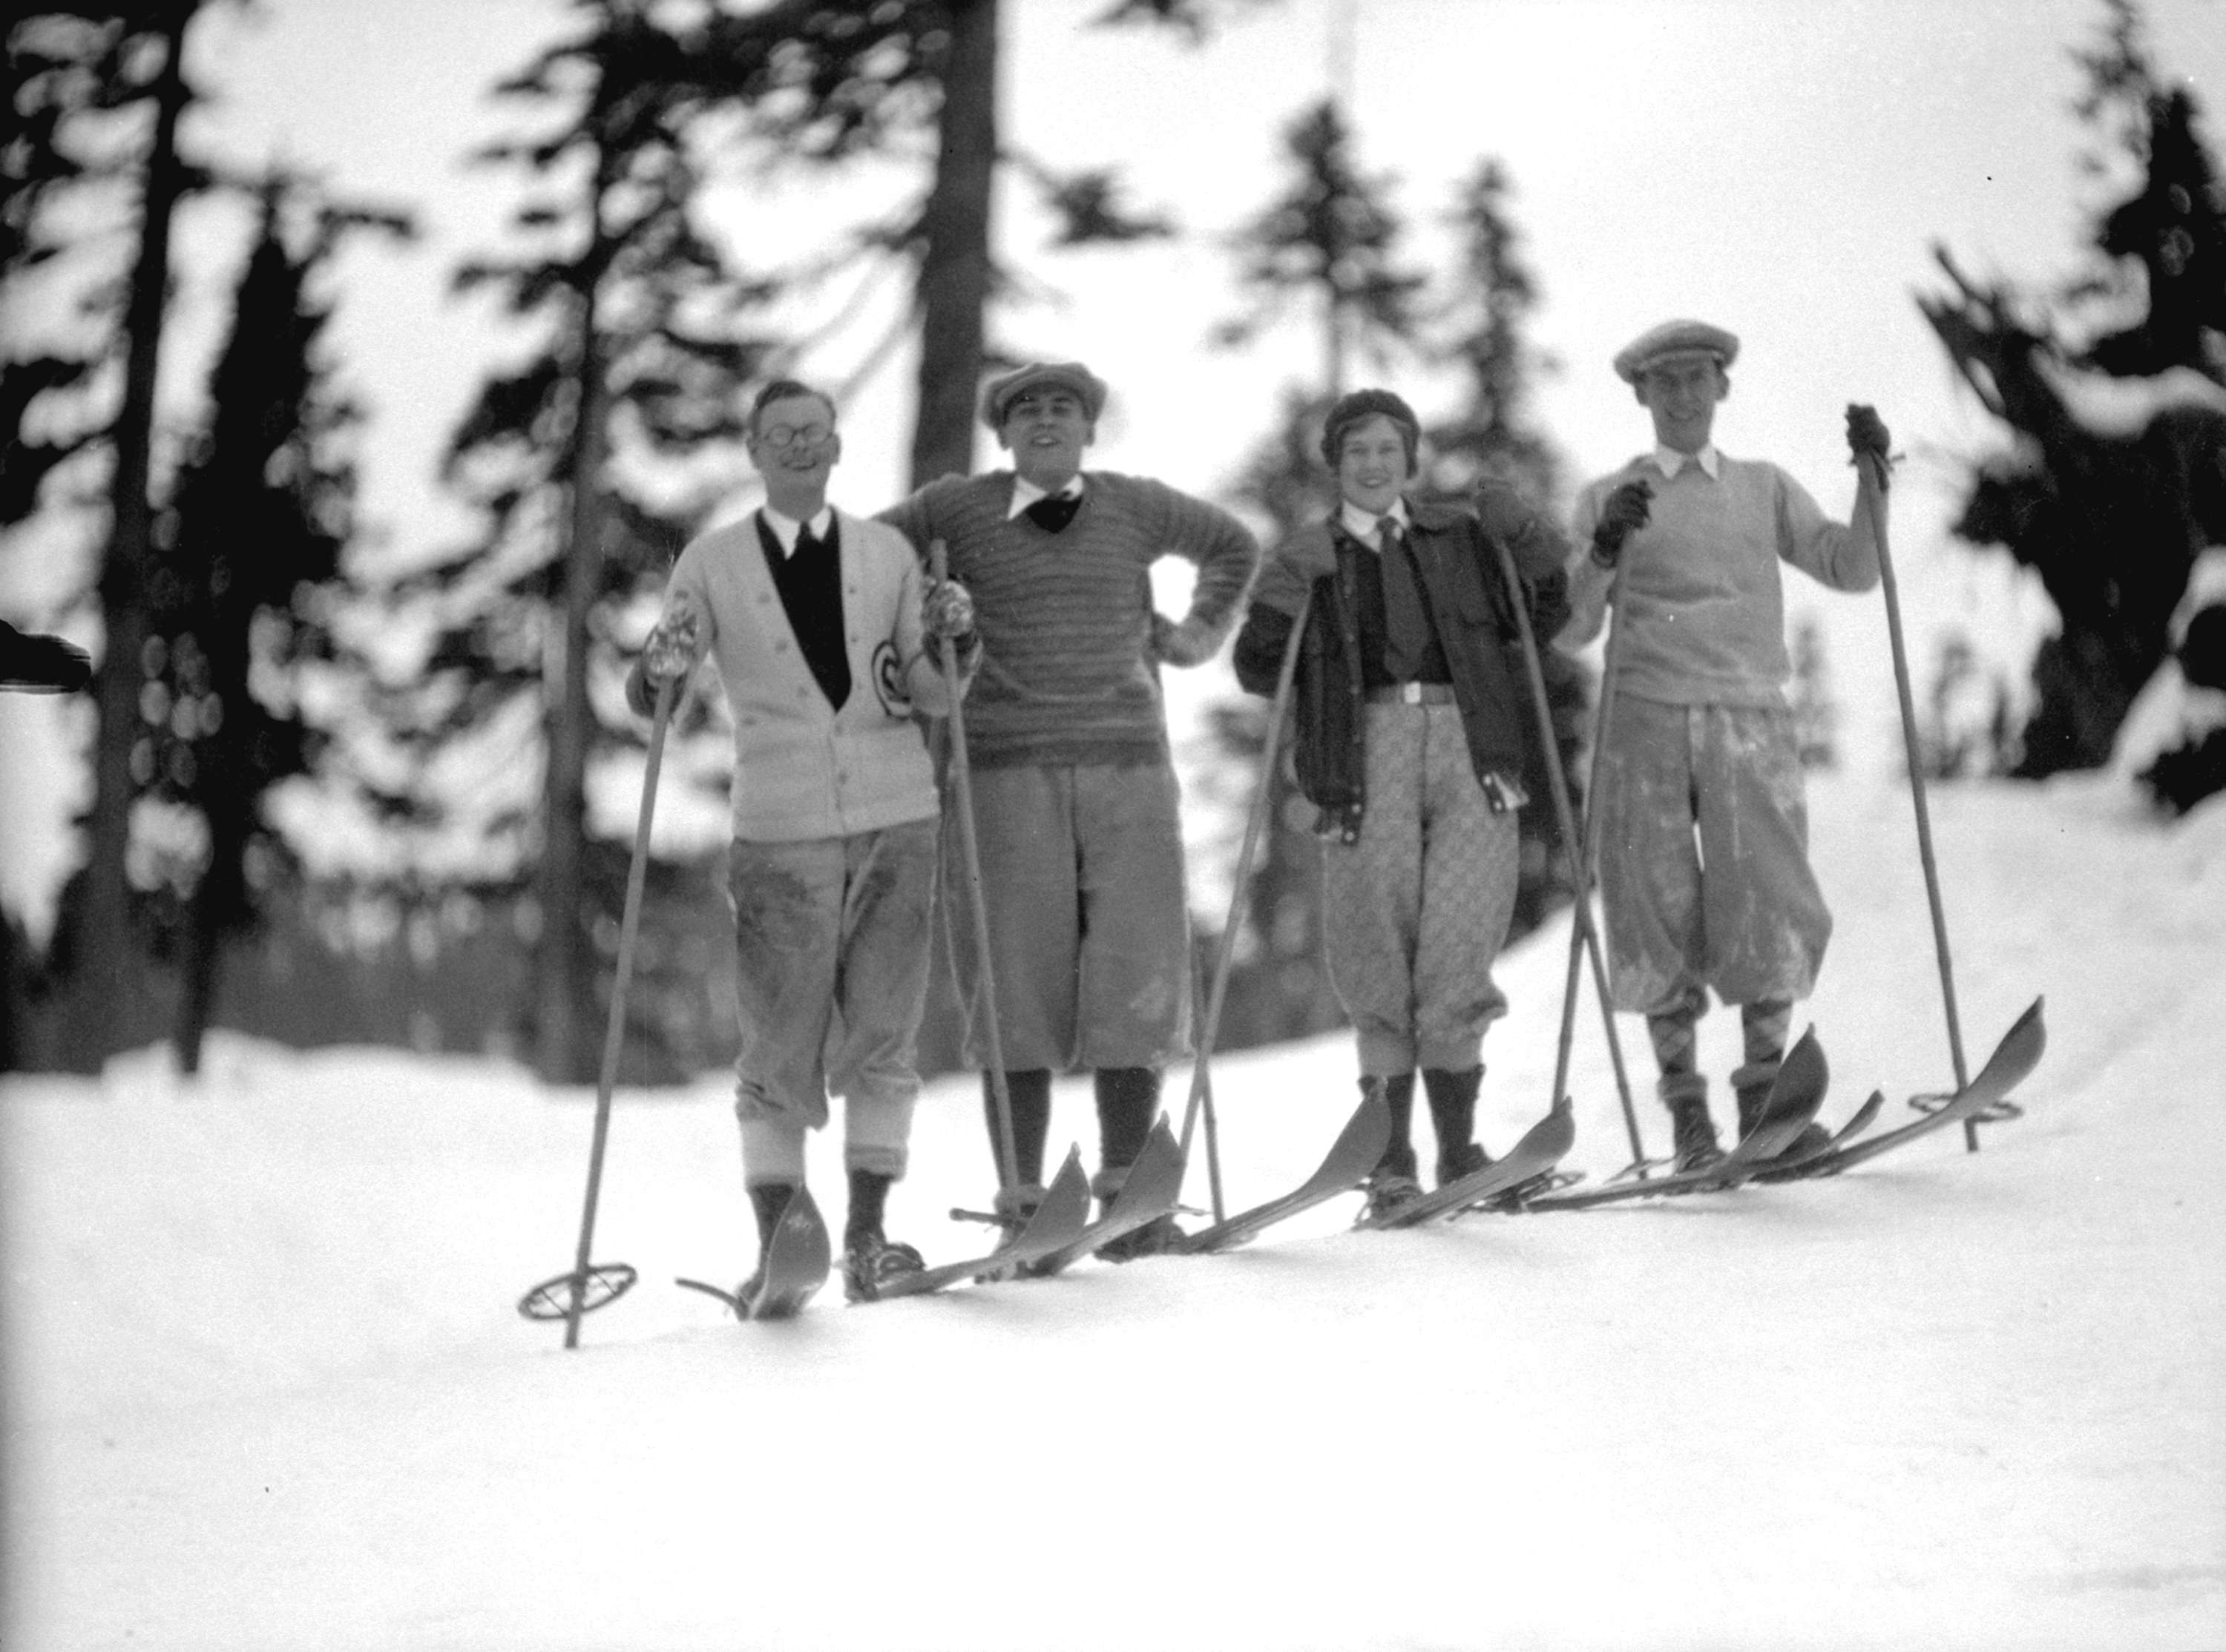 10 vintage ski photos from local vancouver mountains. Black Bedroom Furniture Sets. Home Design Ideas